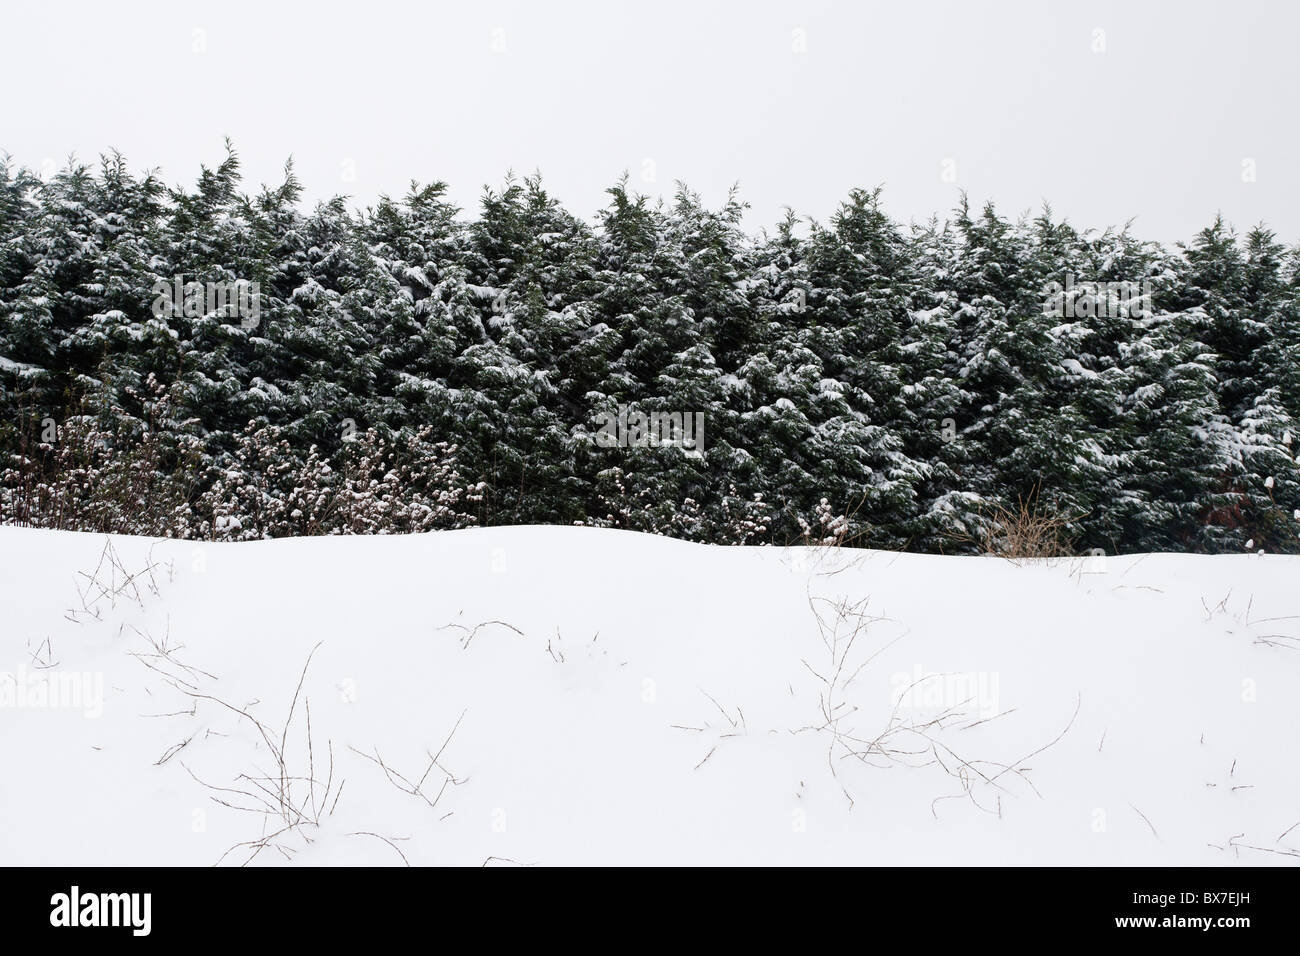 Row of Conifer Trees in Snow - Stock Image